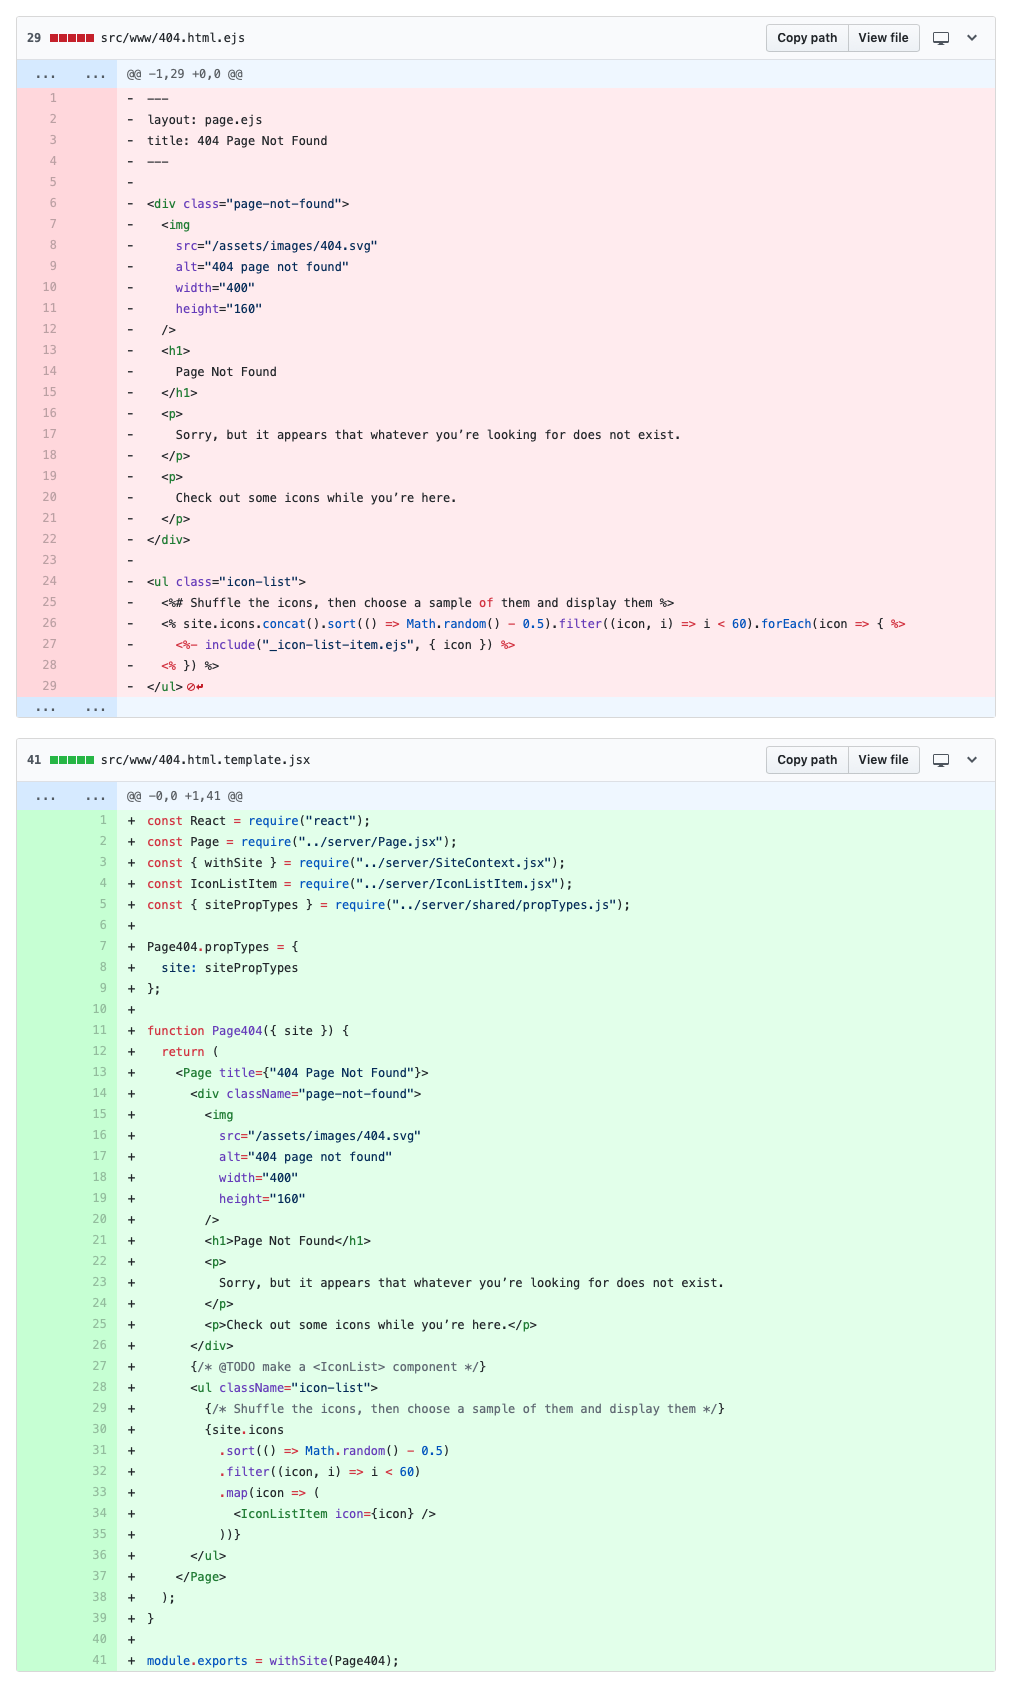 Screenshot of final diff on Github between EJS and JSX 404 pages